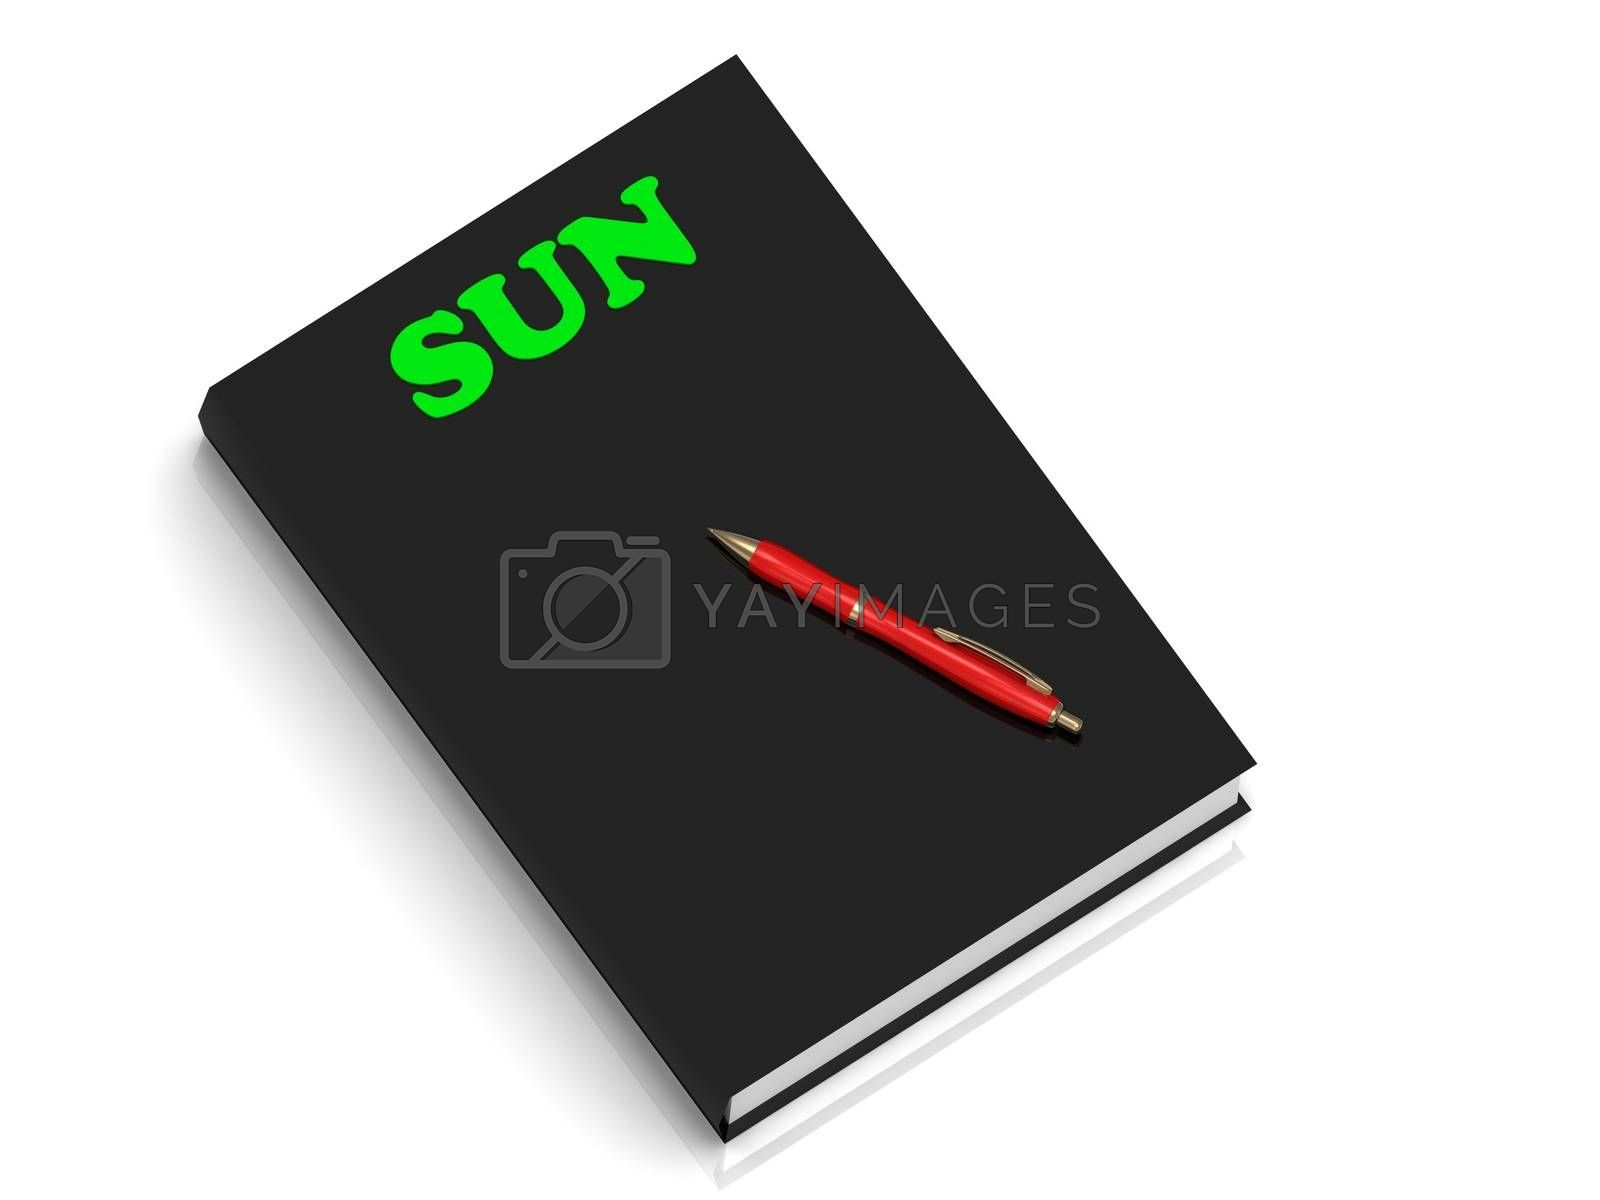 SUN- inscription of green letters on black book on white background